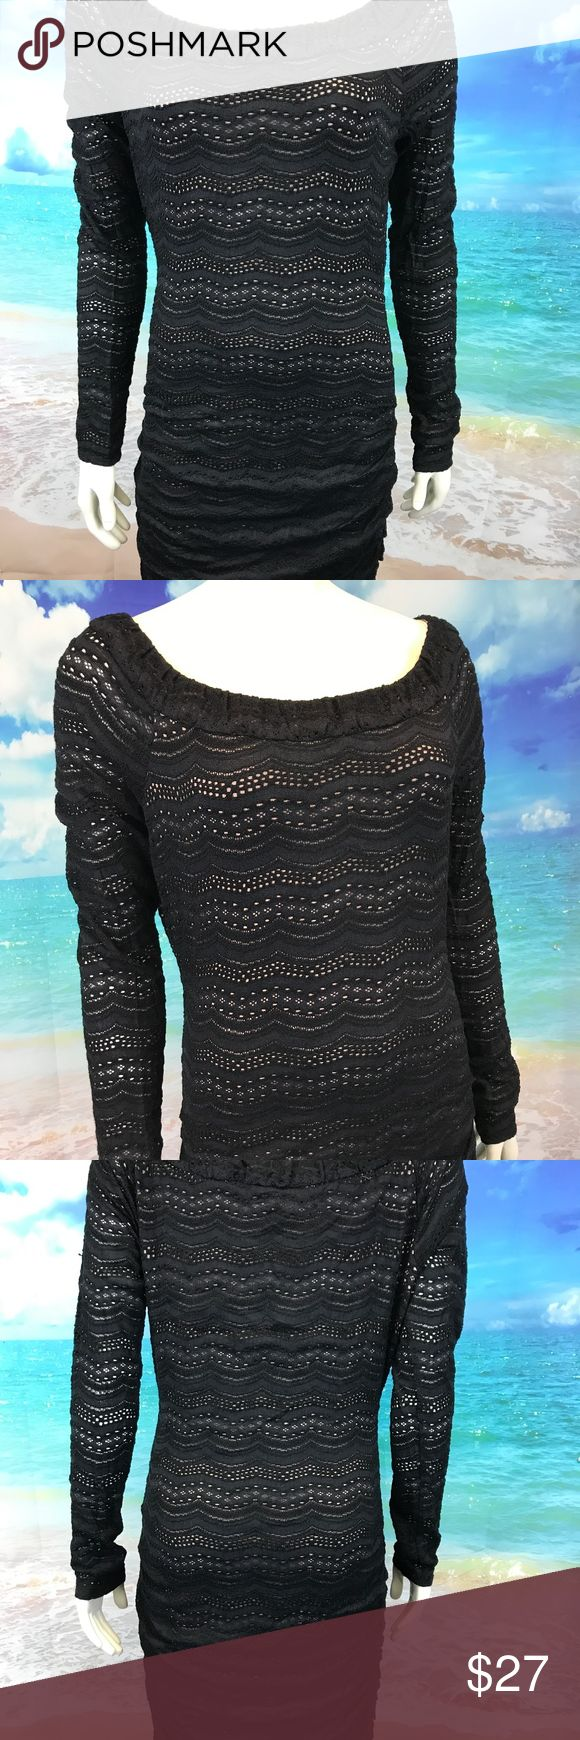 "BCBG Max Azria Black Tan Lace Dress Women's Large BCBG Max Azria Black Tan Lace Dress Women's Large Stretch Party Sheath #780 Measurements Laying Flat:  Armpit to Armpit: 20"" Length: 37"" Waist: 15.5"" Hips: 18"" Sleeve Length: 24"" BCBGMaxAzria Dresses Long Sleeve"